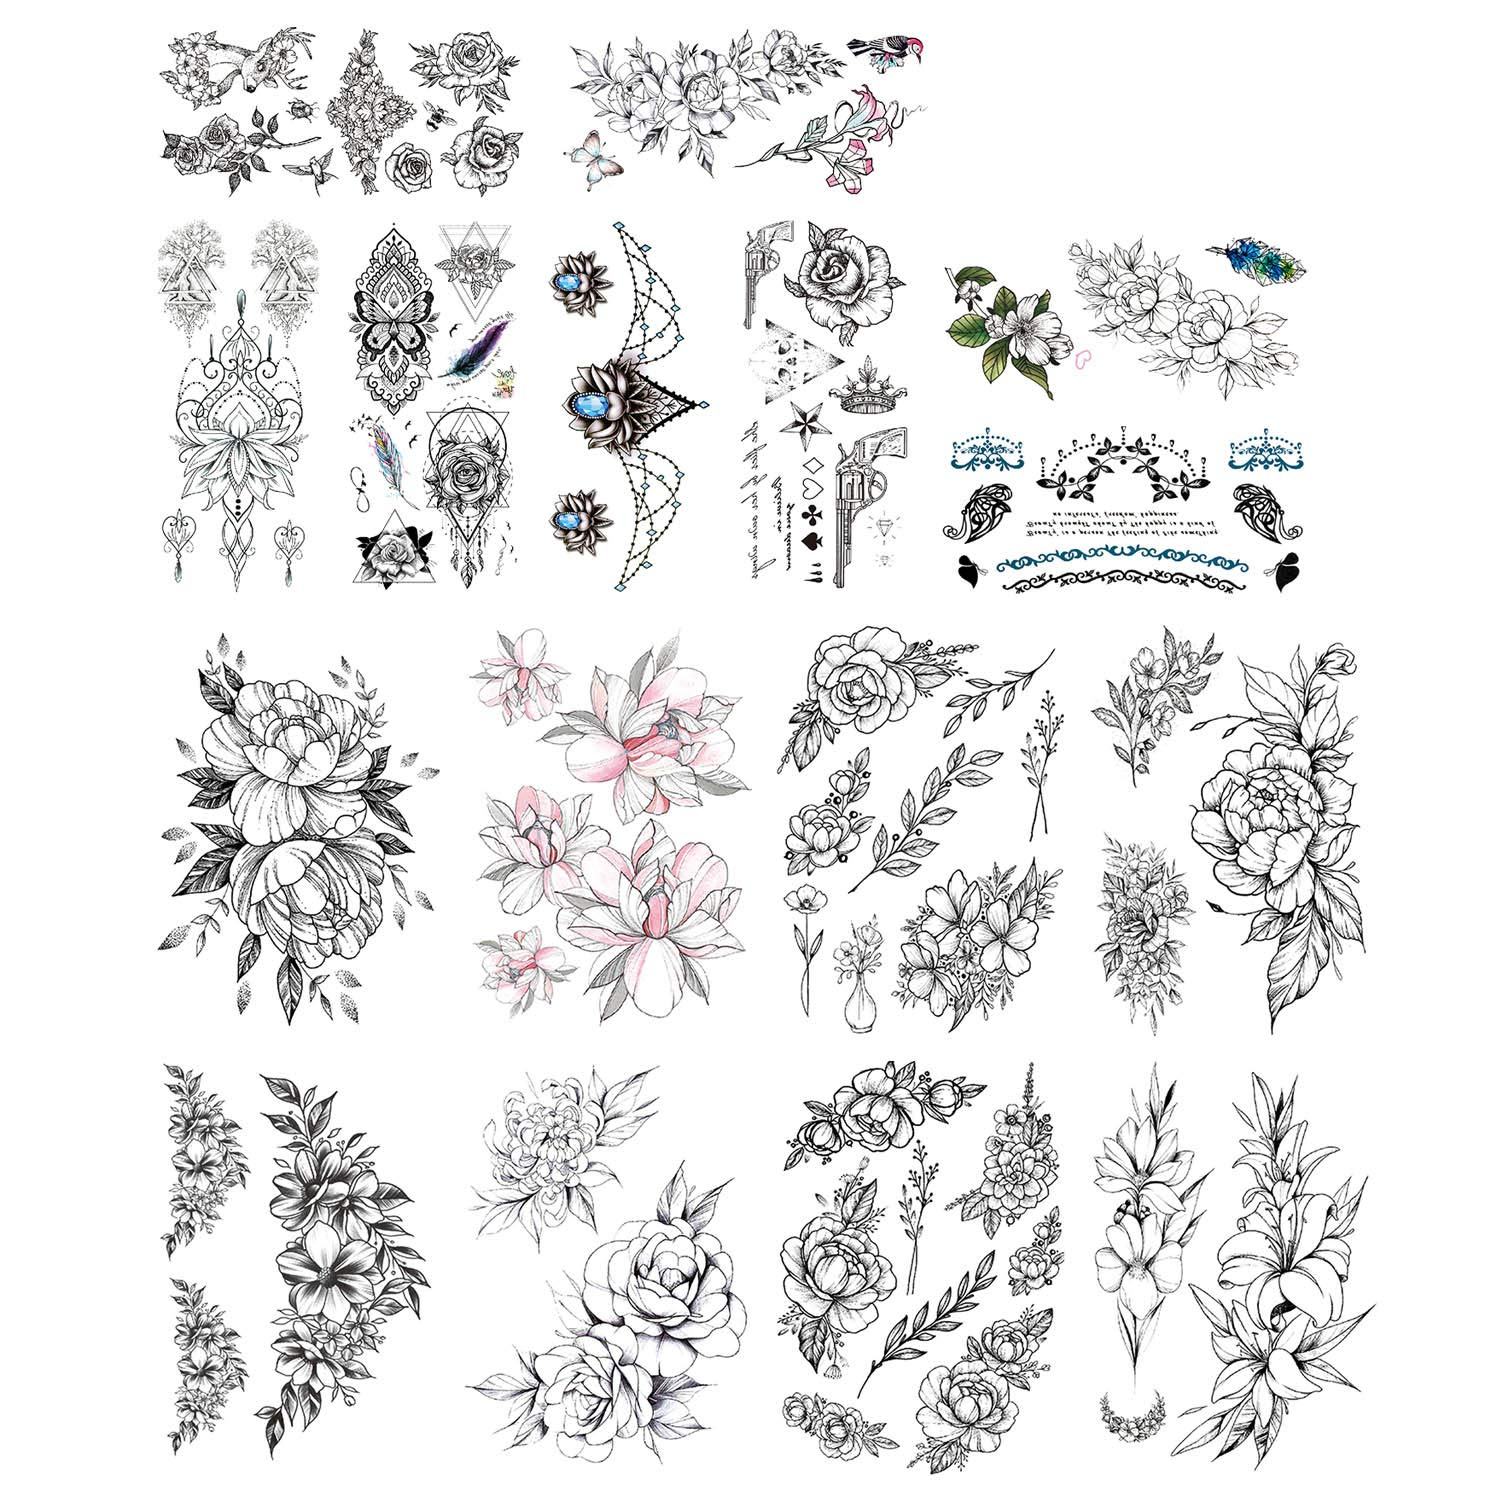 DaLin Sexy Floral Temporary Tattoos for Women Men Flowers Collection (Black Flowers Collection 2)